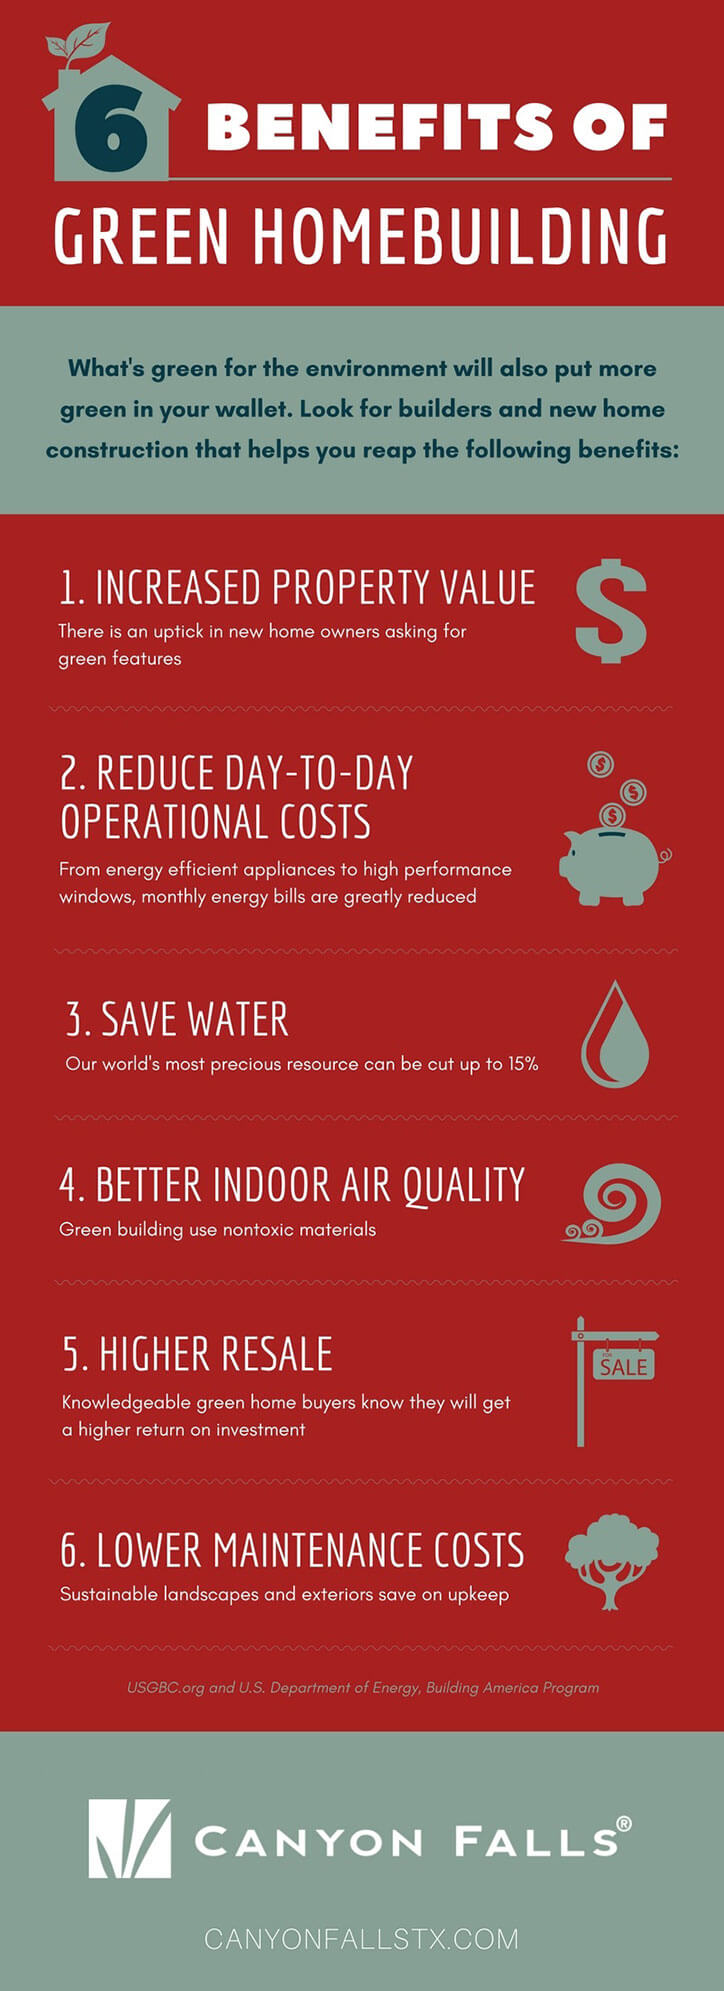 6 benefits of green building homebuilding infographic